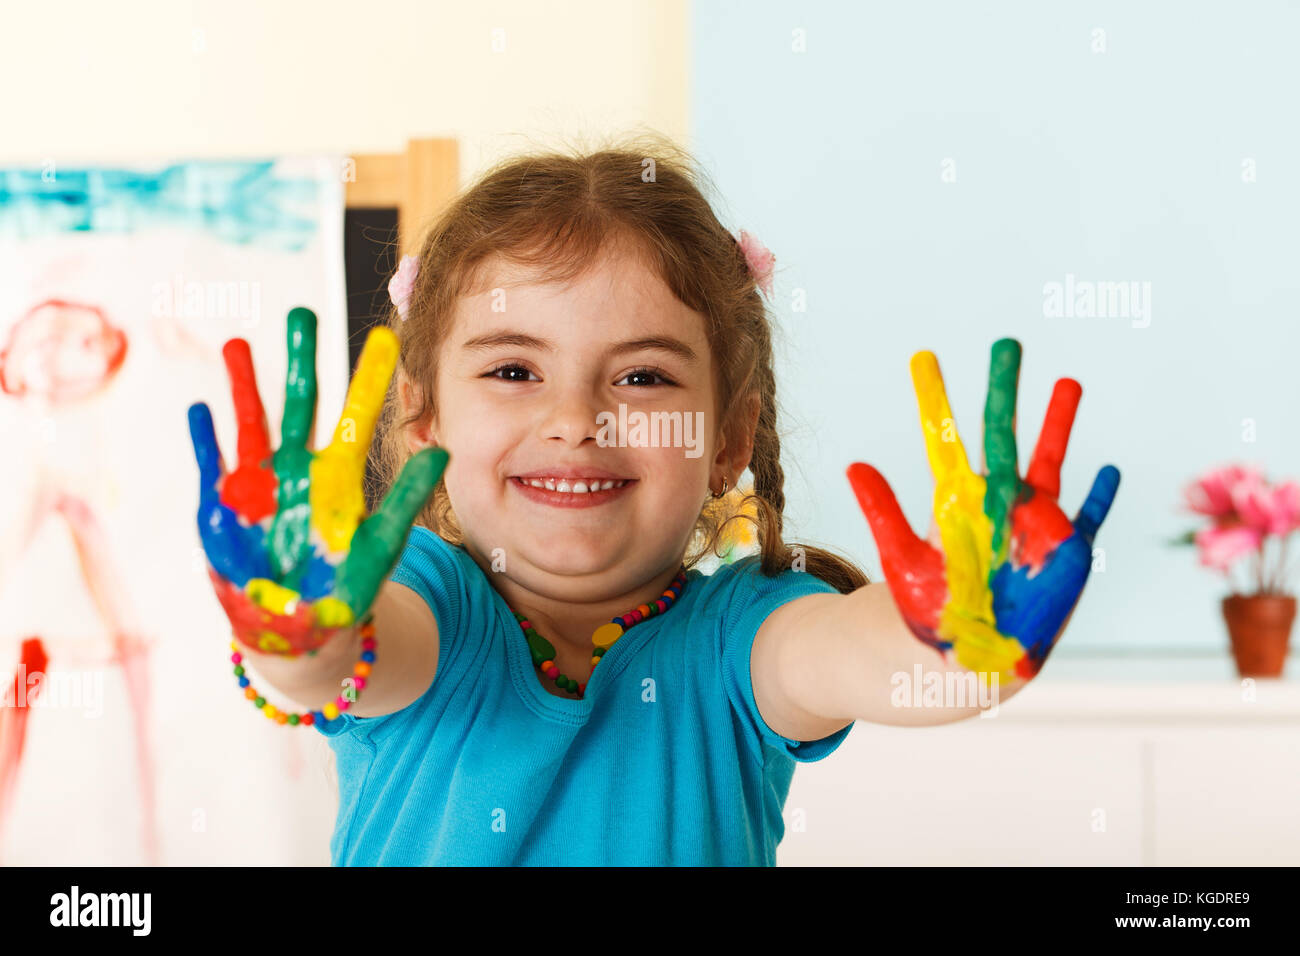 Five year old girl with hands painted in colorful paints ready for hand prints - Stock Image